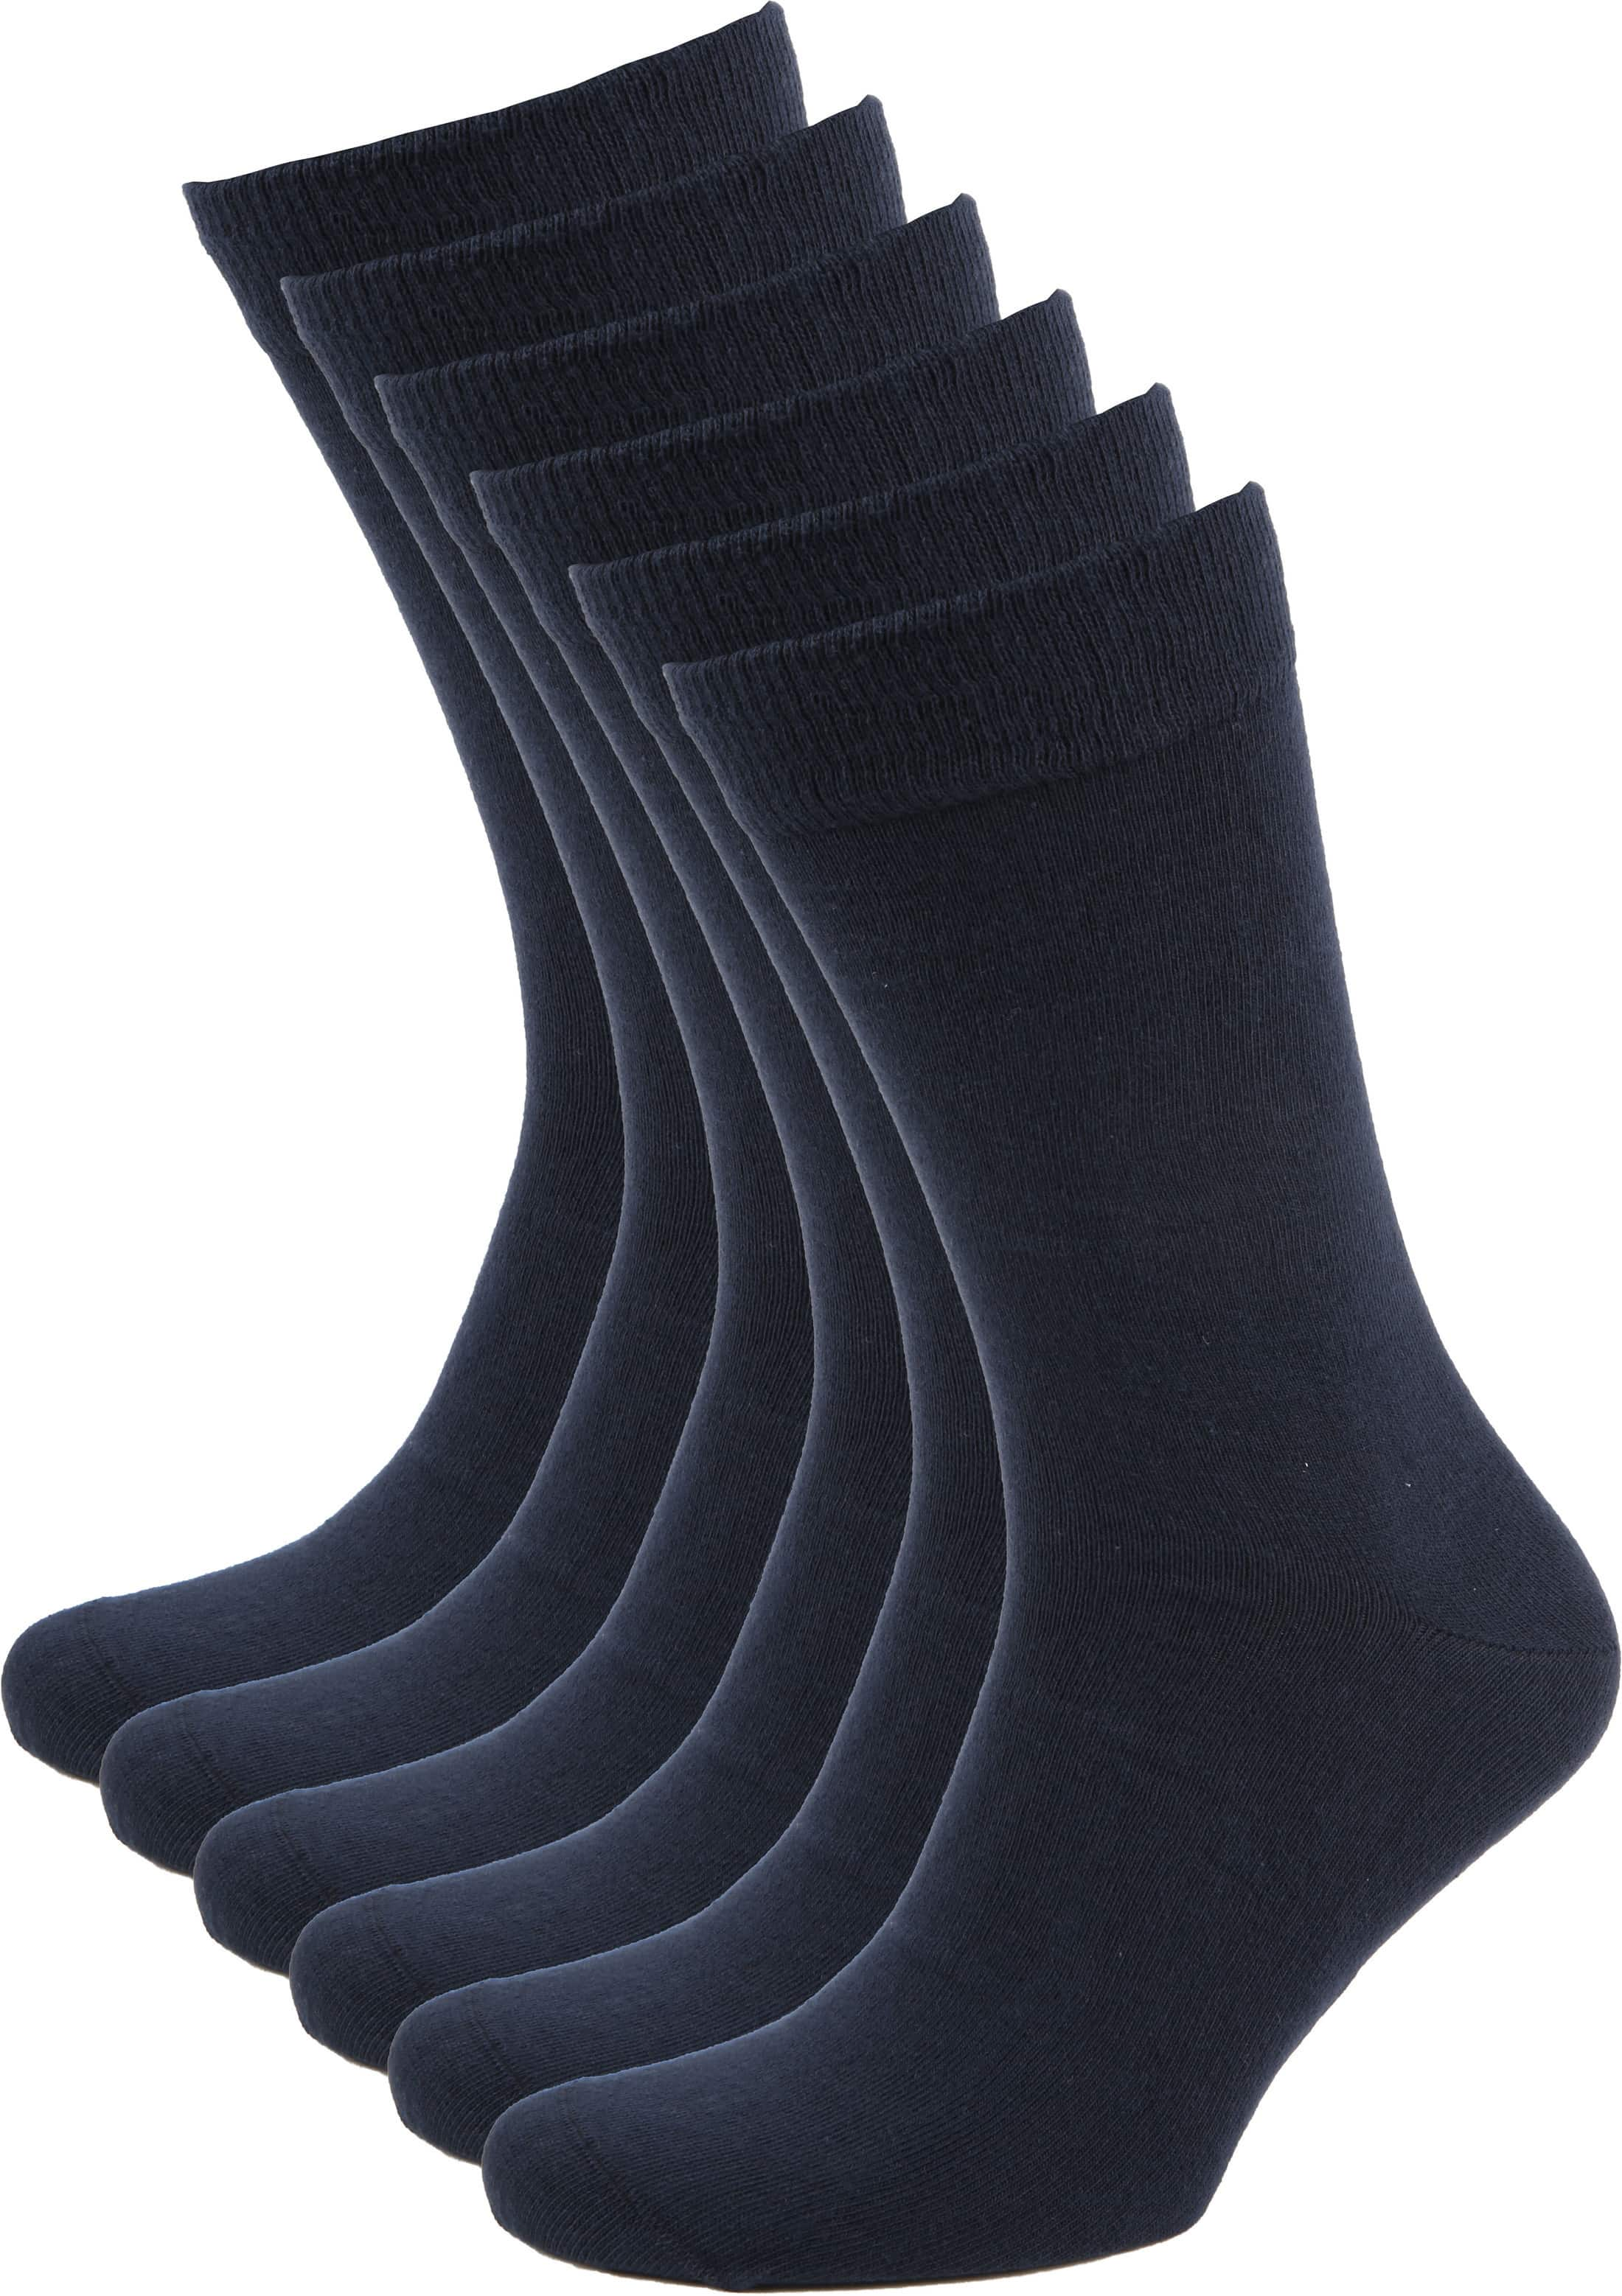 Suitable Bio Cotton Socks Navy 6-Pack foto 0